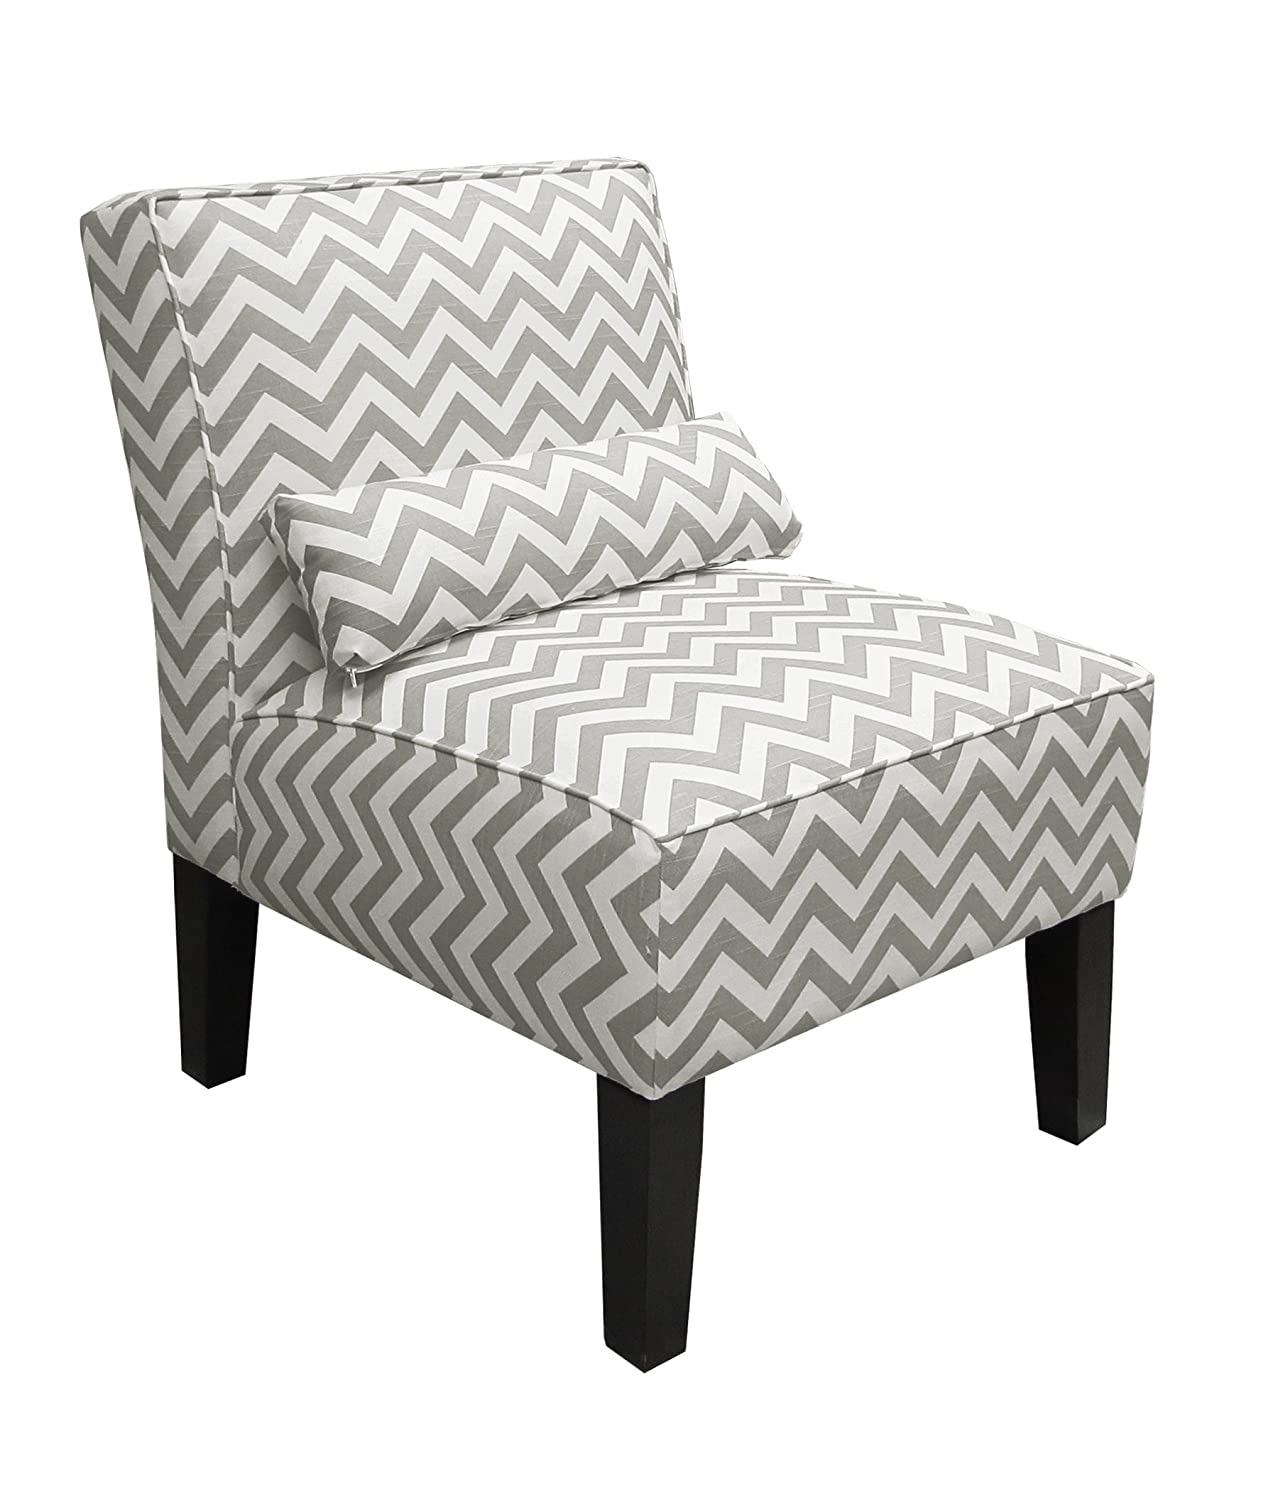 Beau Amazon.com: Skyline Furniture Armless Chair In Zig Zag Grey: Kitchen U0026  Dining